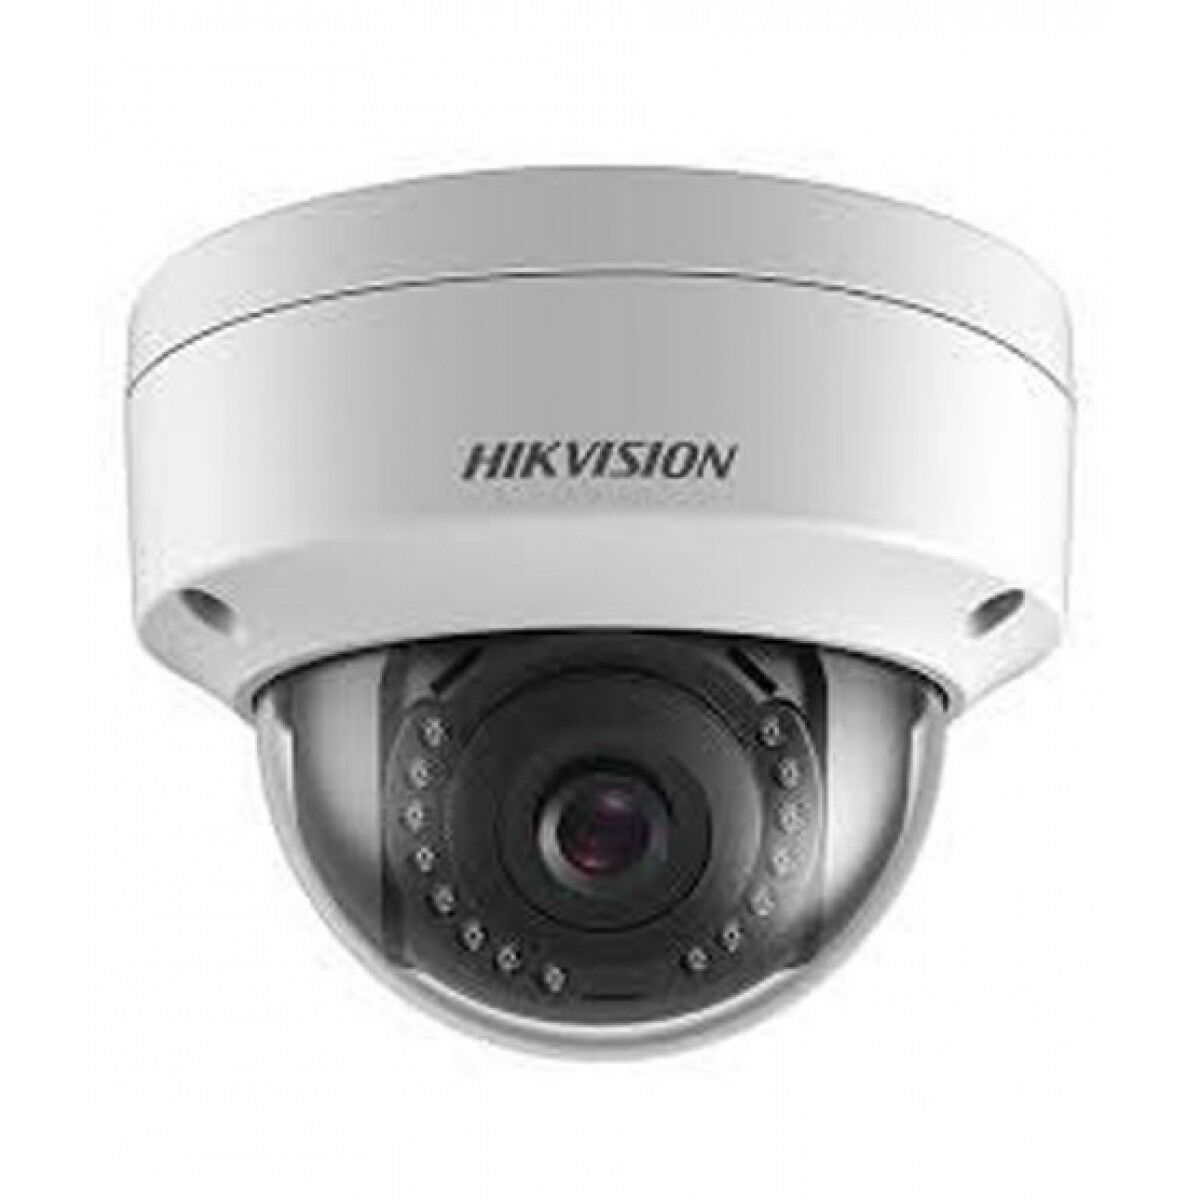 Hikvision 4MP POE IP Dome Network Camera 2.8mm Wide View Ang